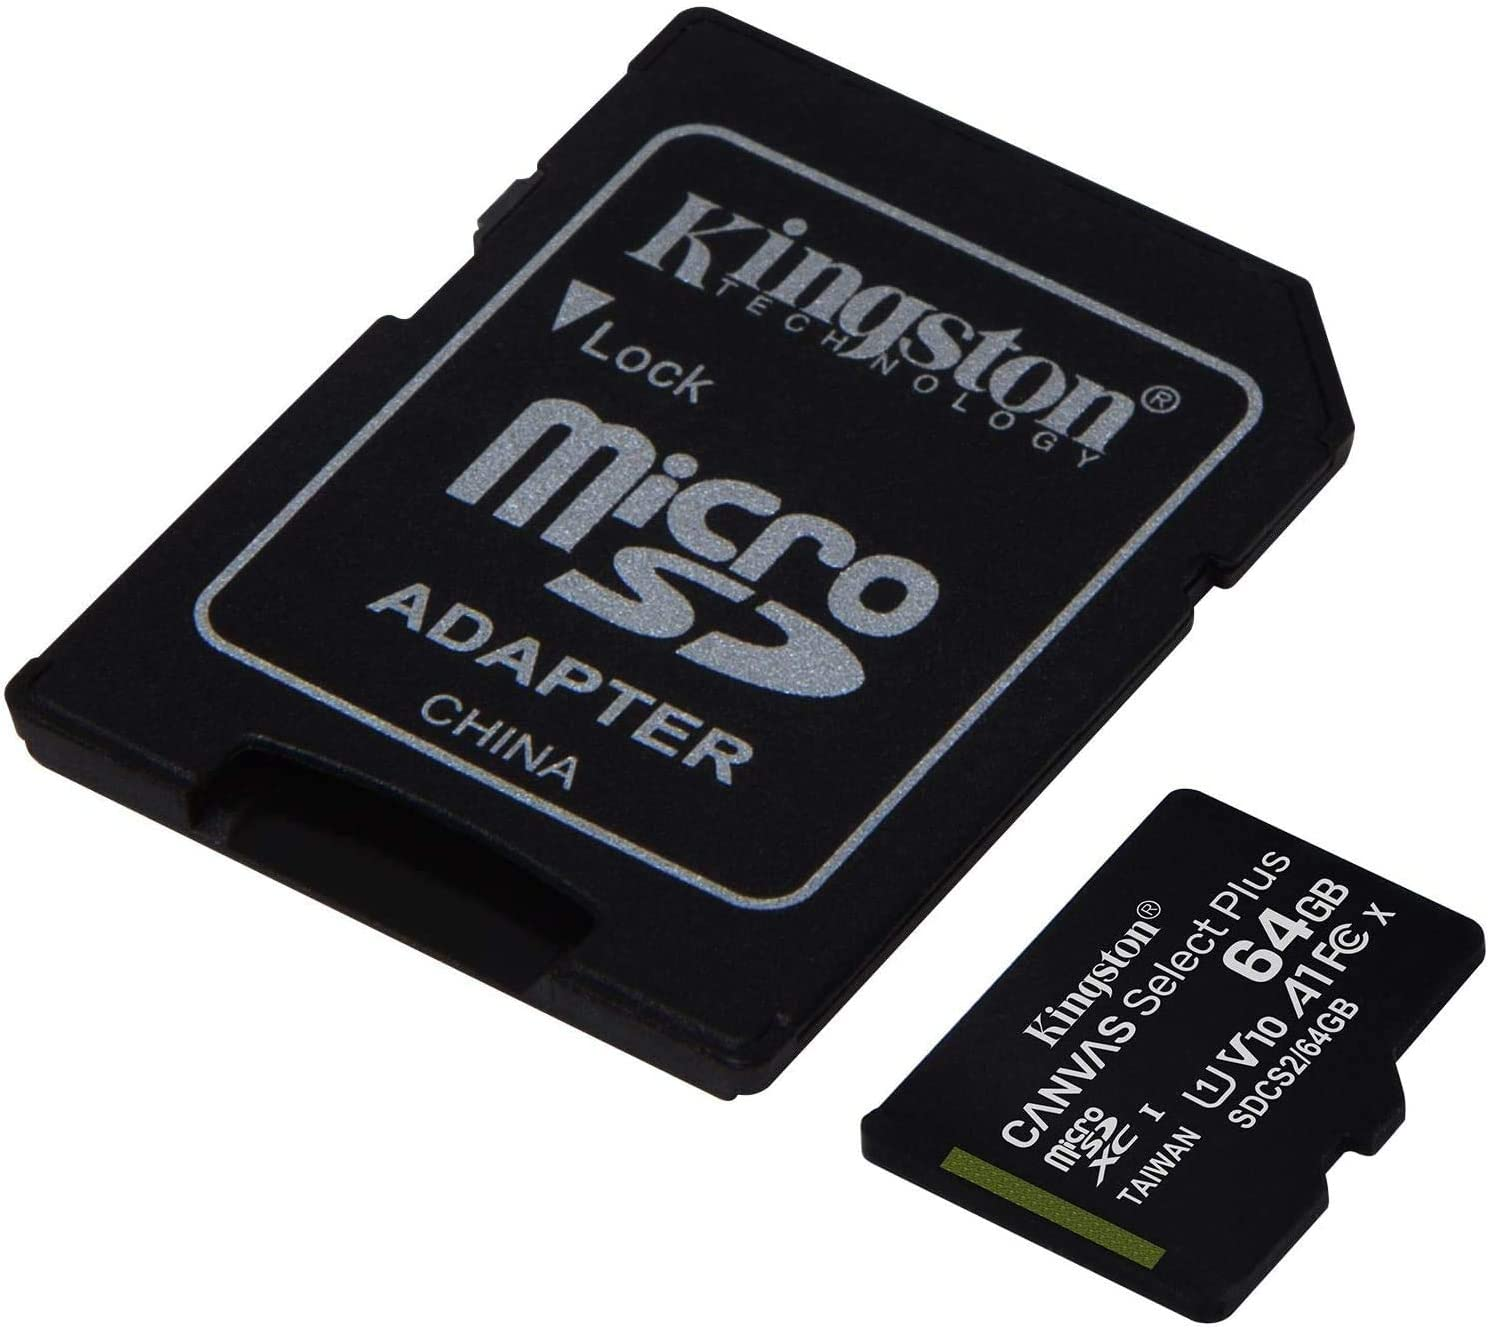 100MBs Works with Kingston Kingston 64GB Verykool Cyprus Pro s6005X MicroSDXC Canvas Select Plus Card Verified by SanFlash.